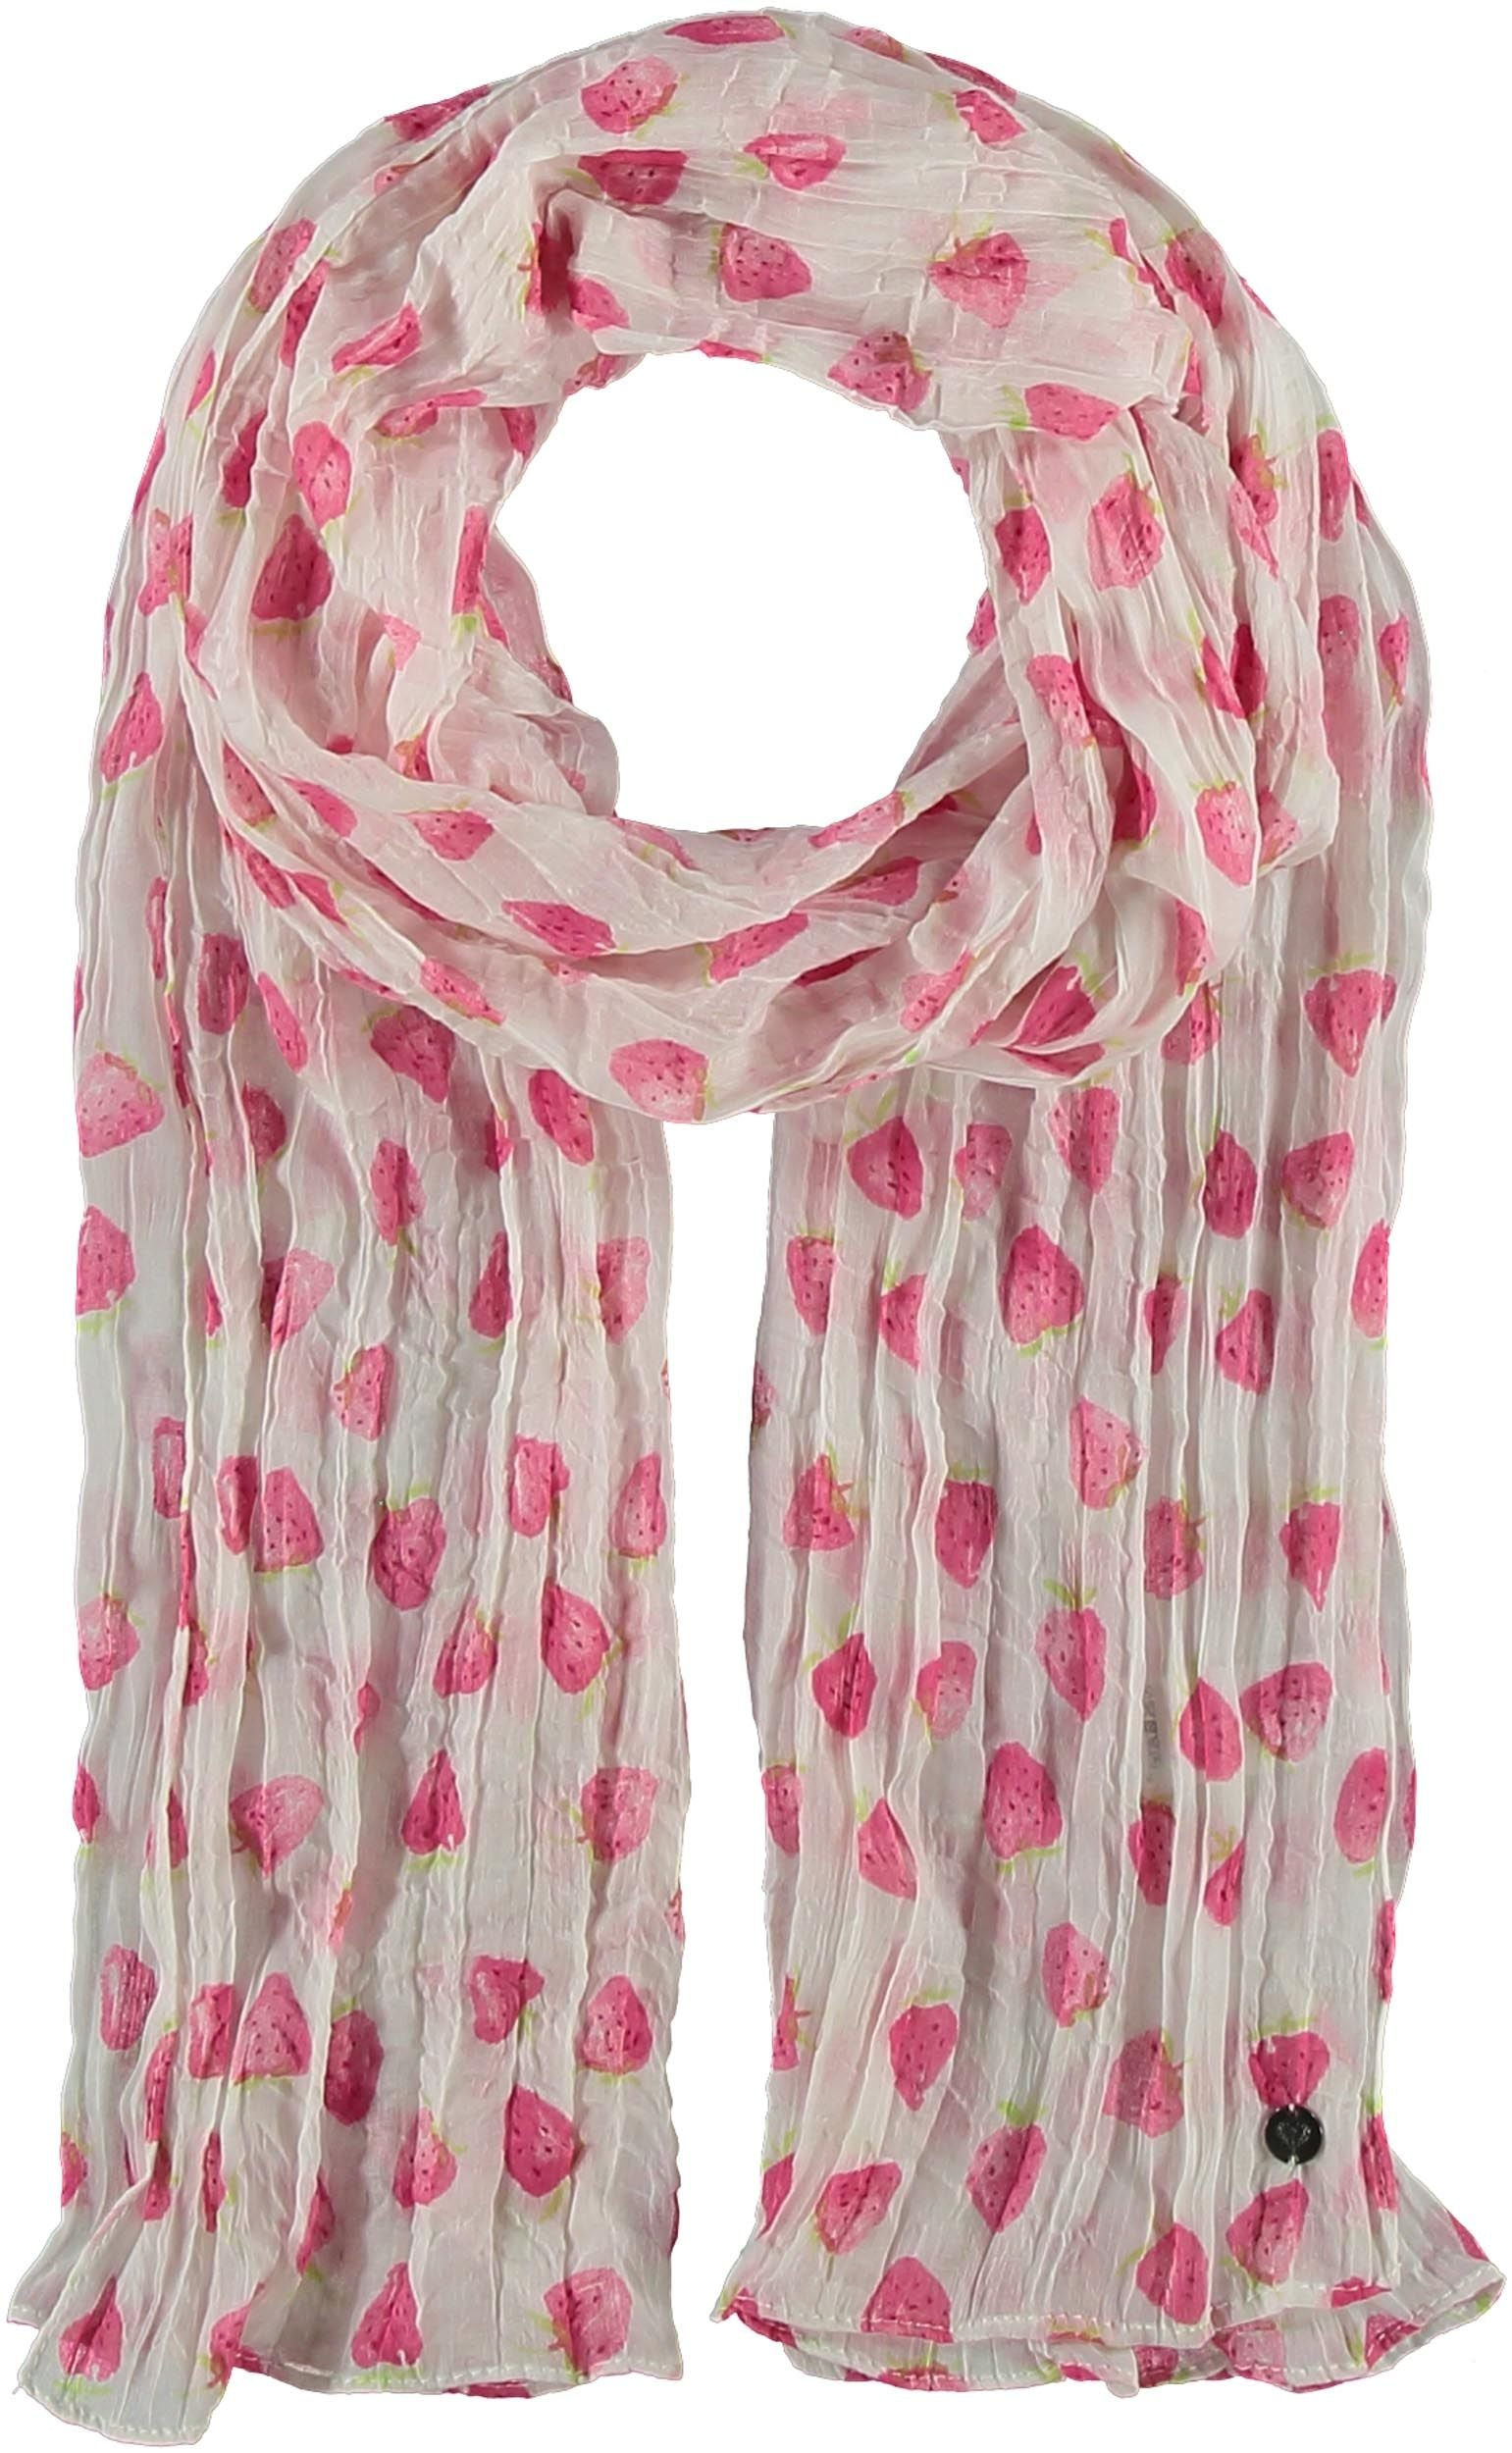 Strawberry Fields Polyester Print Scarf